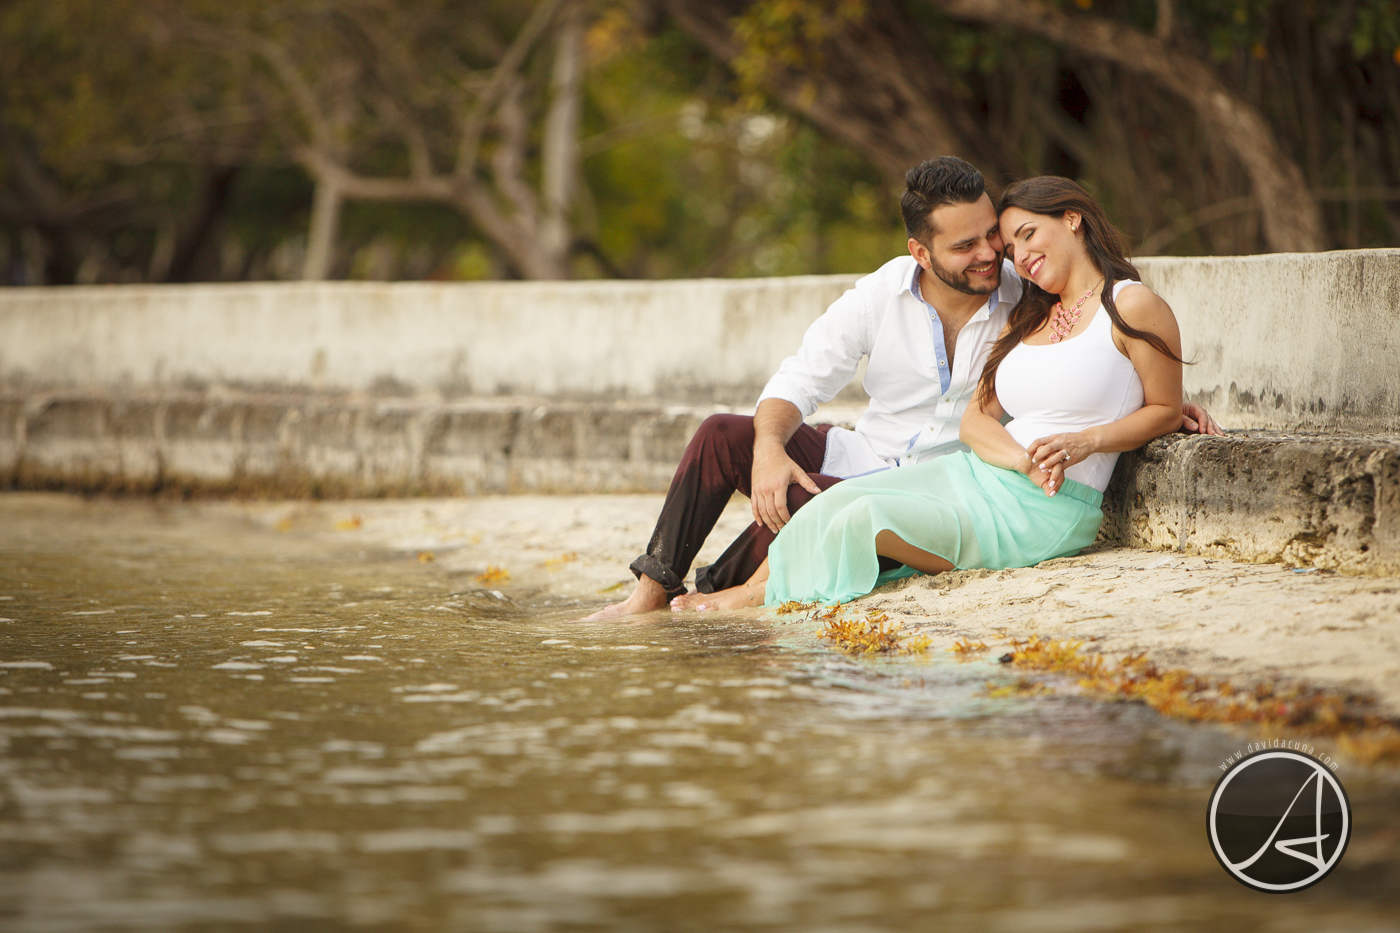 Upcoming Miami Wedding of Paula + Helmuth